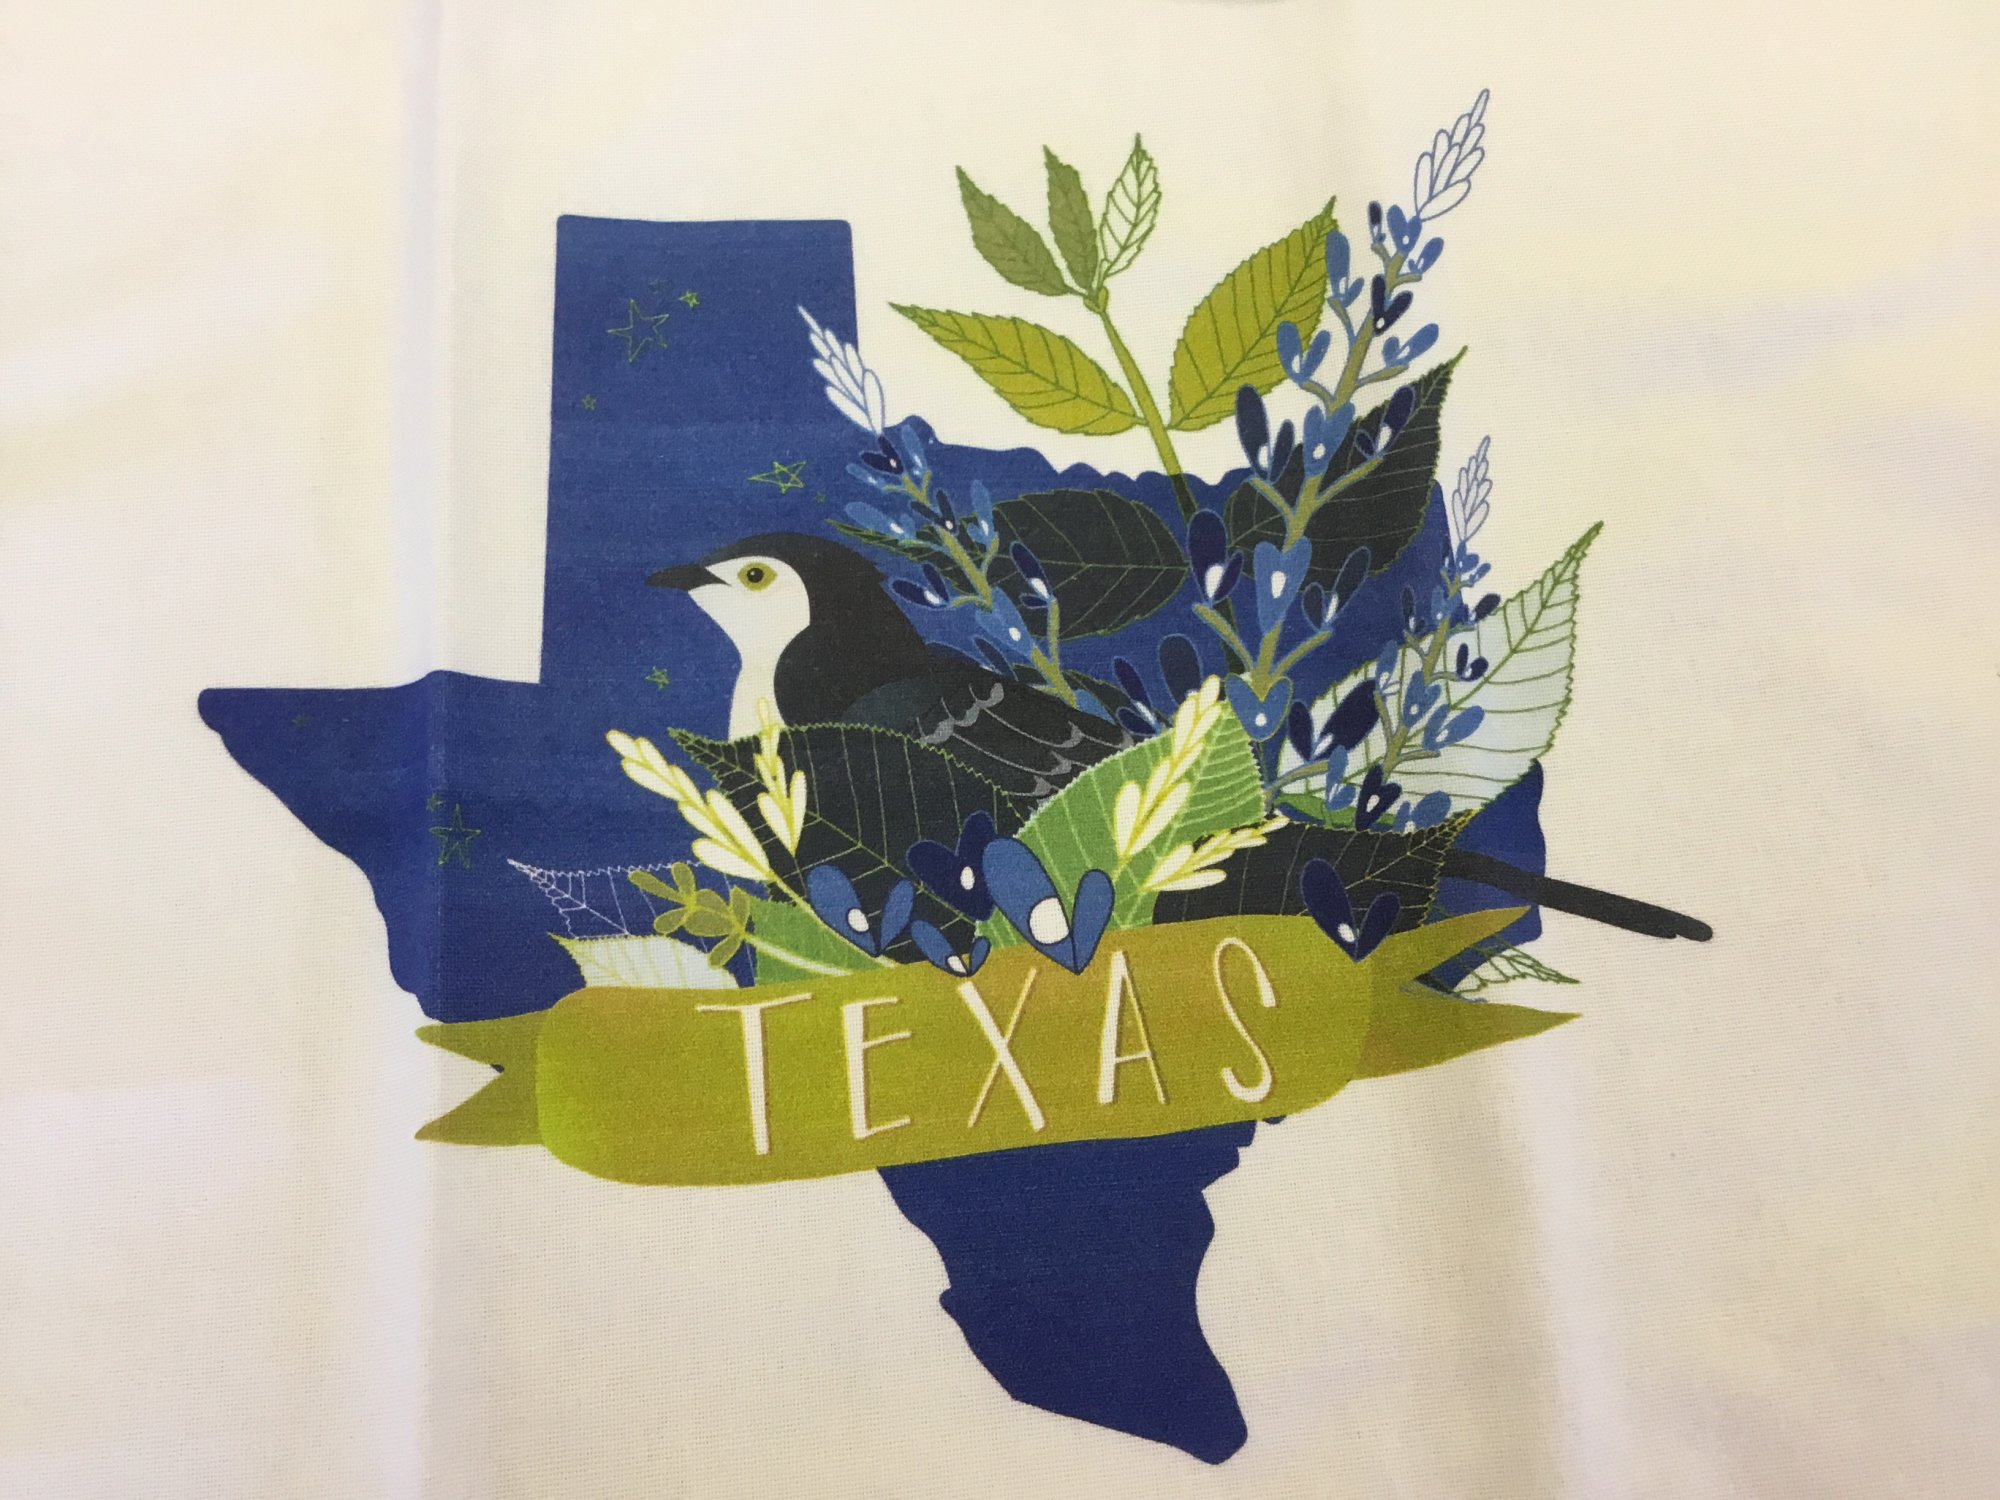 DESERT SONG TEA TOWEL TEXAS by Moda